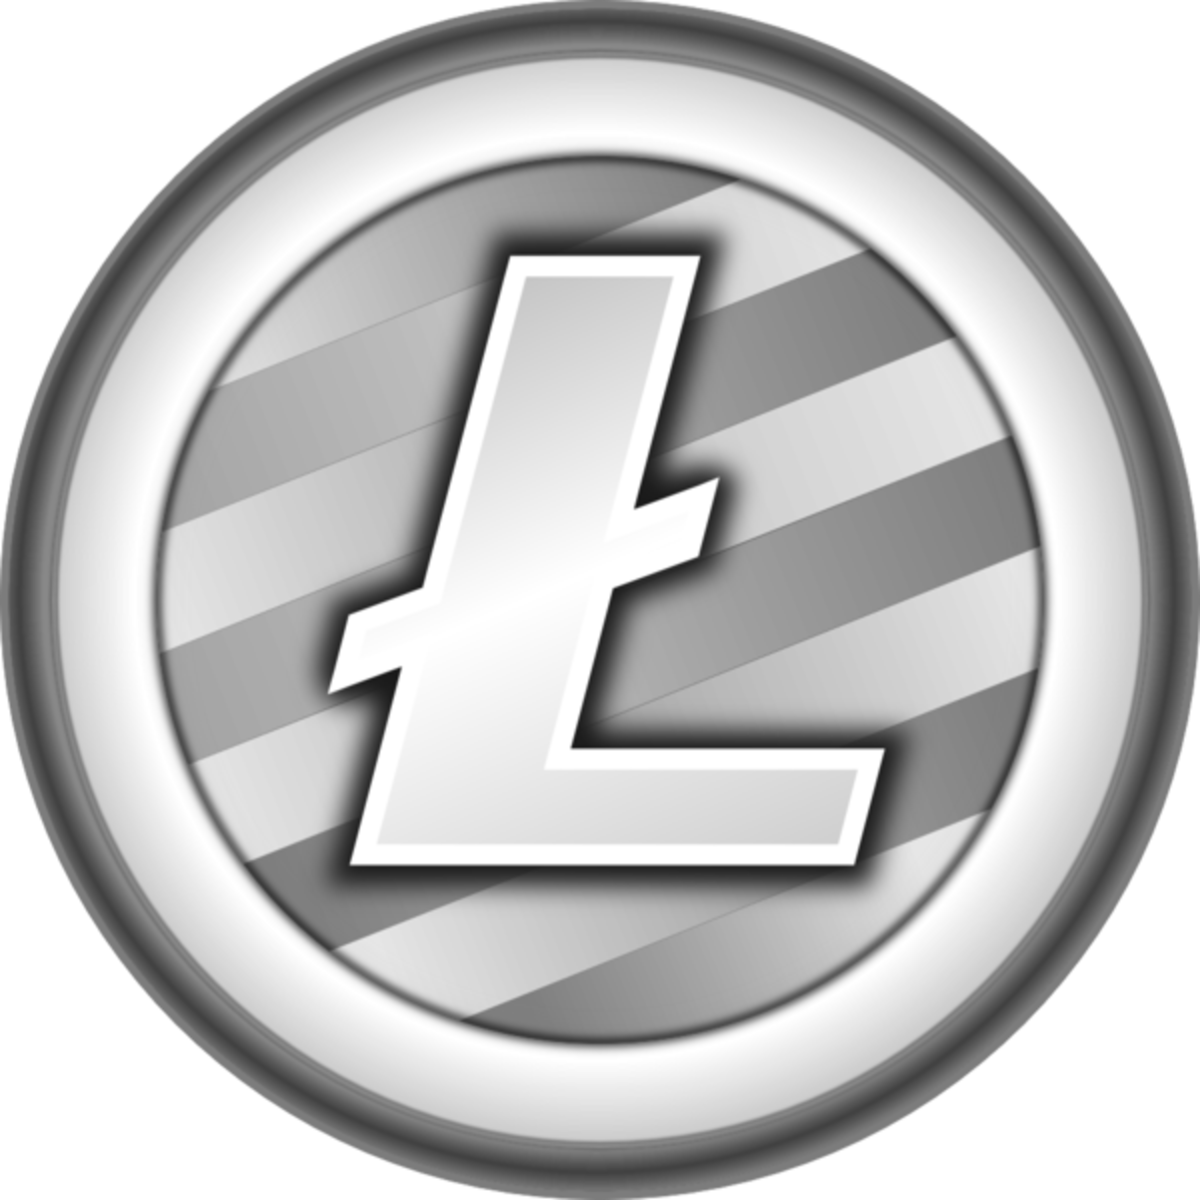 The Litecoin logo